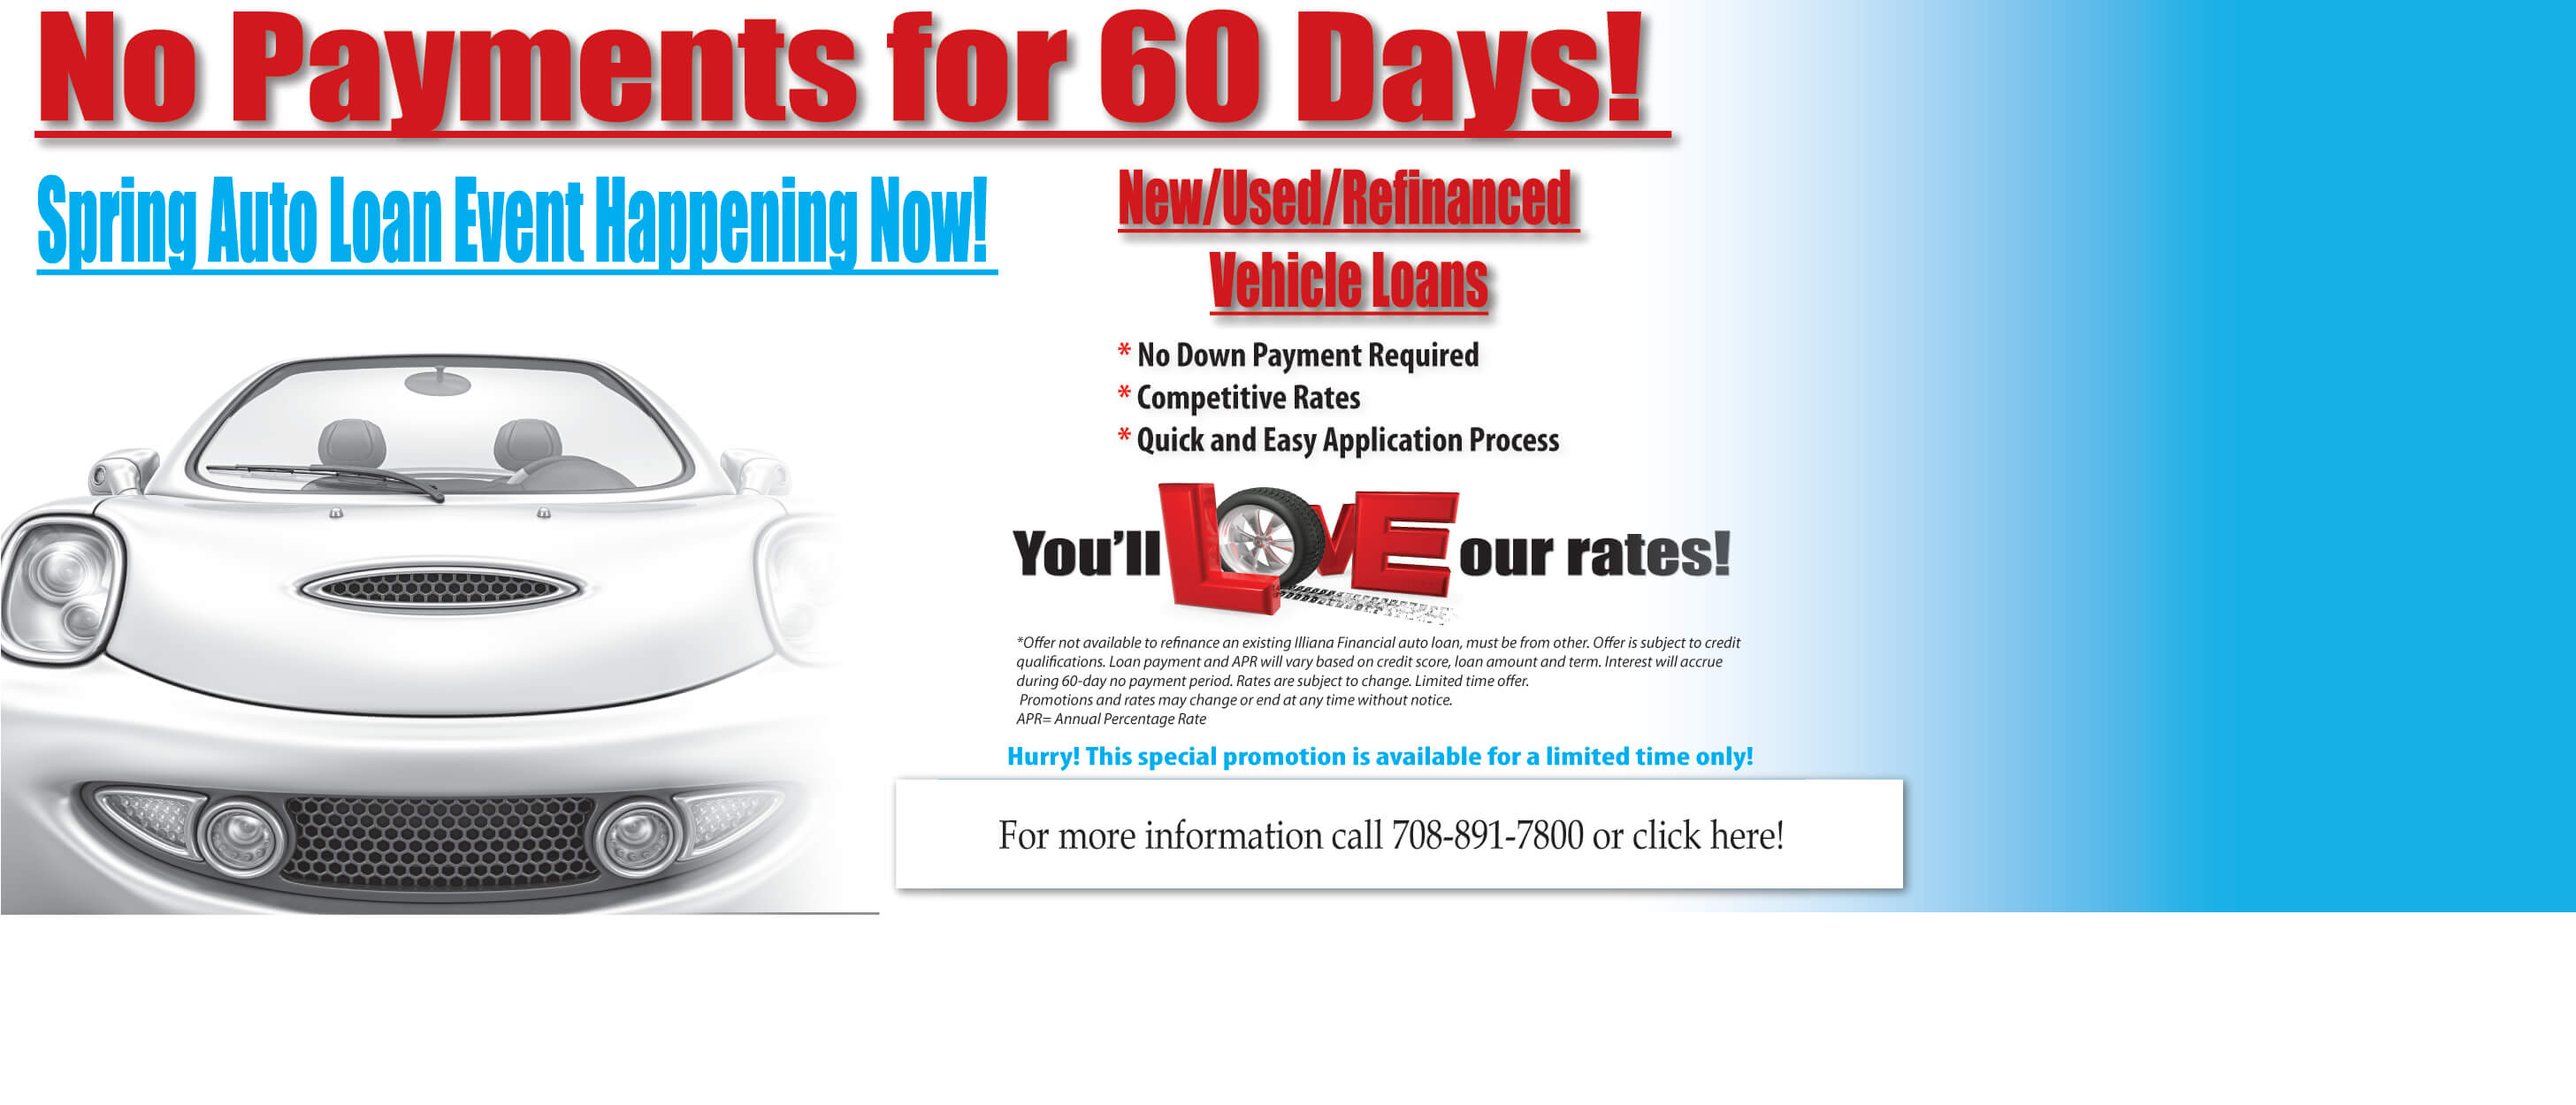 Auto Loan Promotion no payments for 60 days